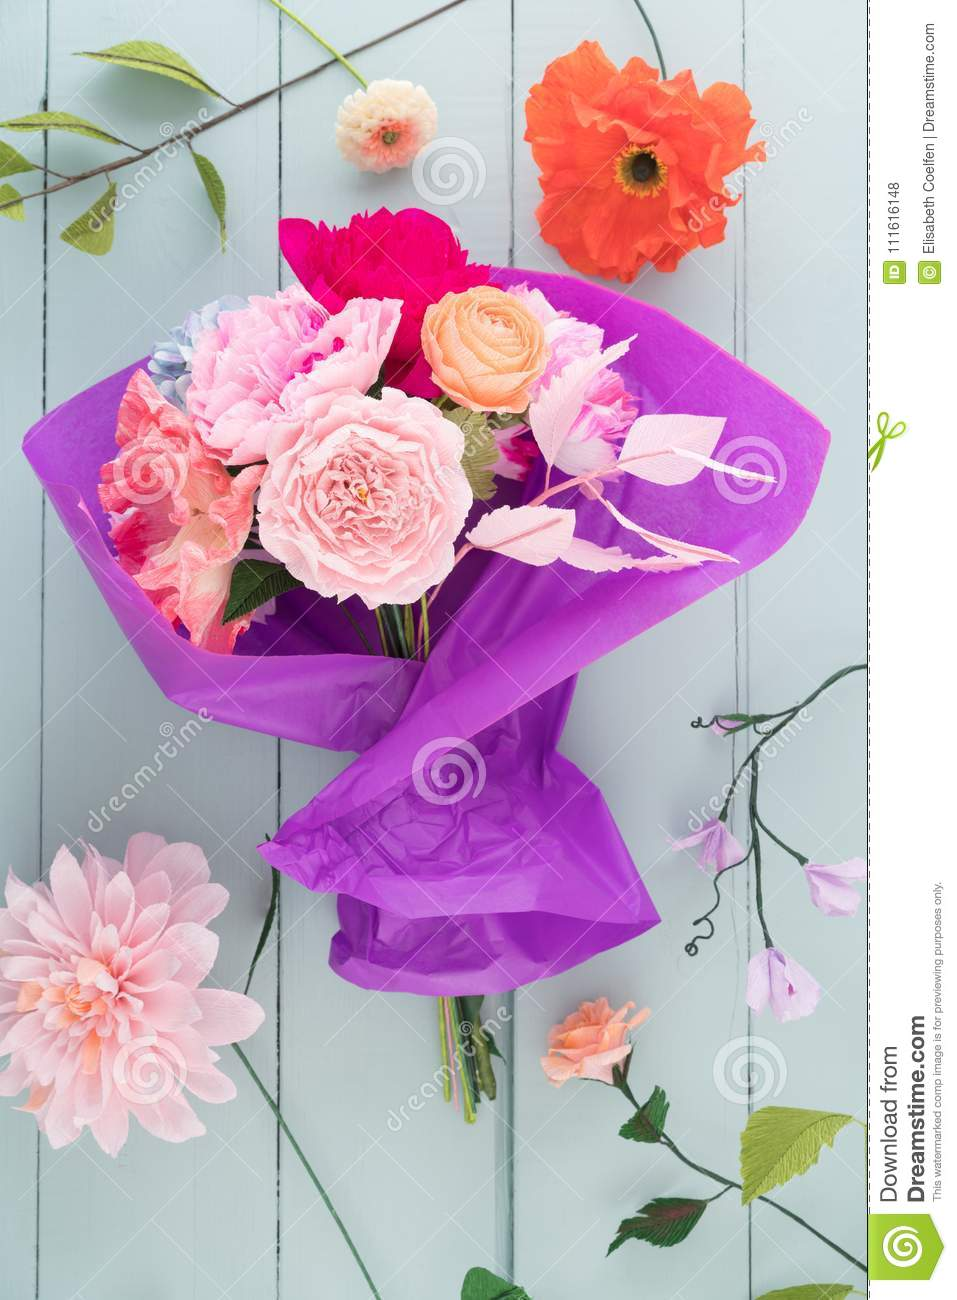 Crepe Paper Flower Bouquet Stock Photo Image Of Roses 111616148